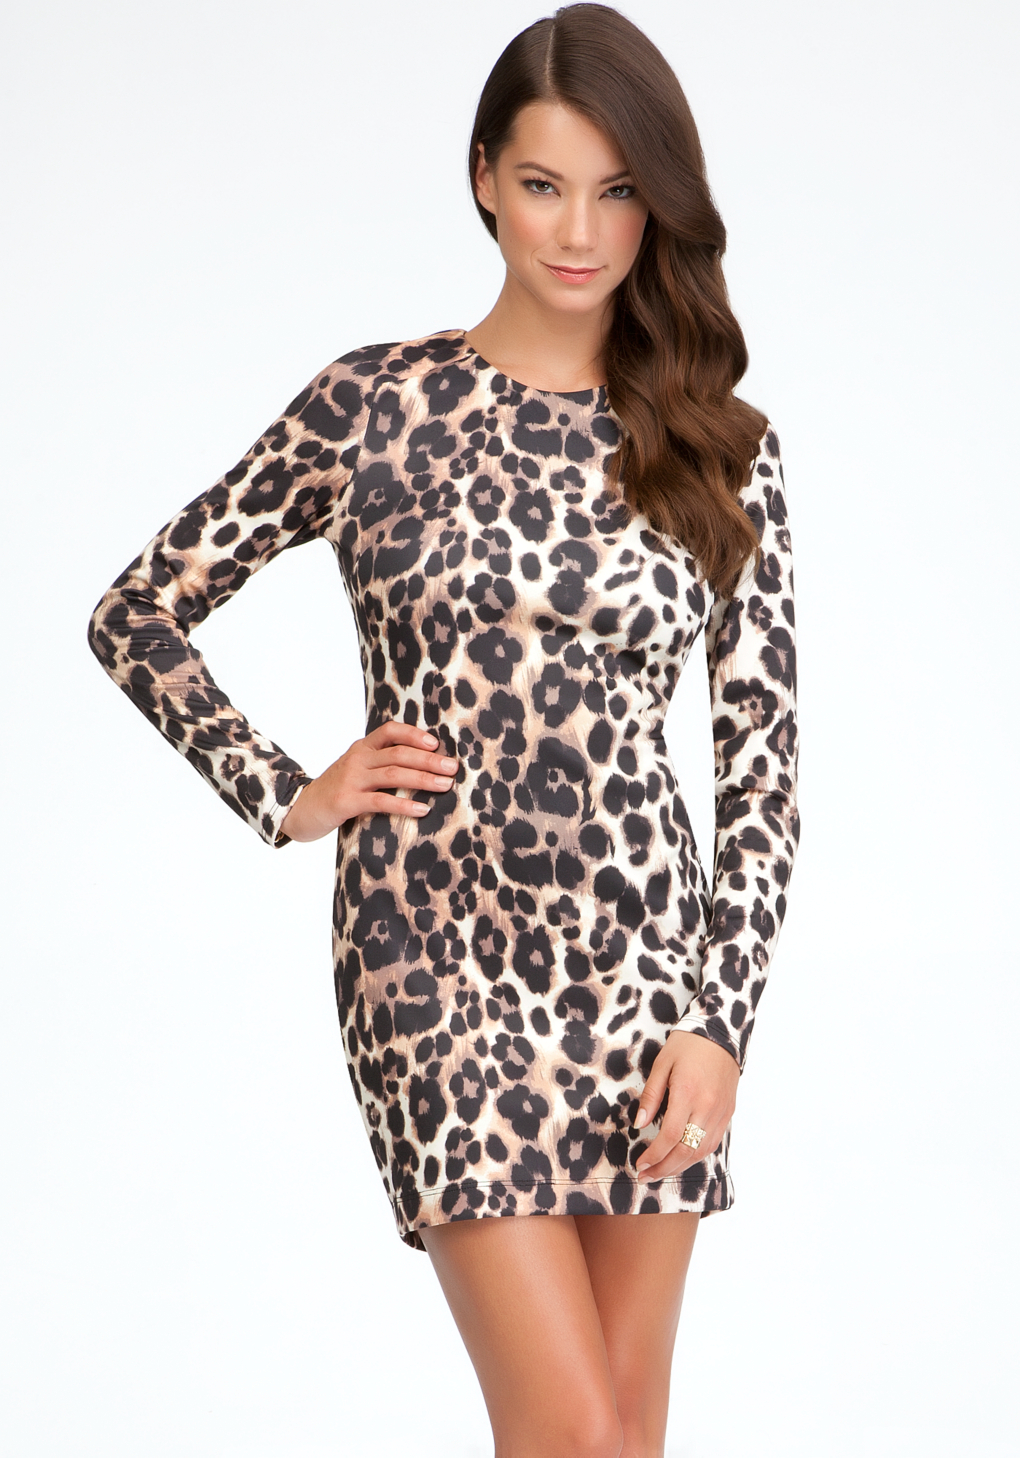 Shop for dresses animal print at dvlnpxiuf.ga Free Shipping. Free Returns. All the time. Sleeveless Short Sleeve 3/4 Sleeve Long Sleeve. Art & Eden Leah Leopard Print Organic Stretch Cotton Dress (Toddler Girls & Little Girls) $ Chaus Leopard Print Faux Wrap Dress.